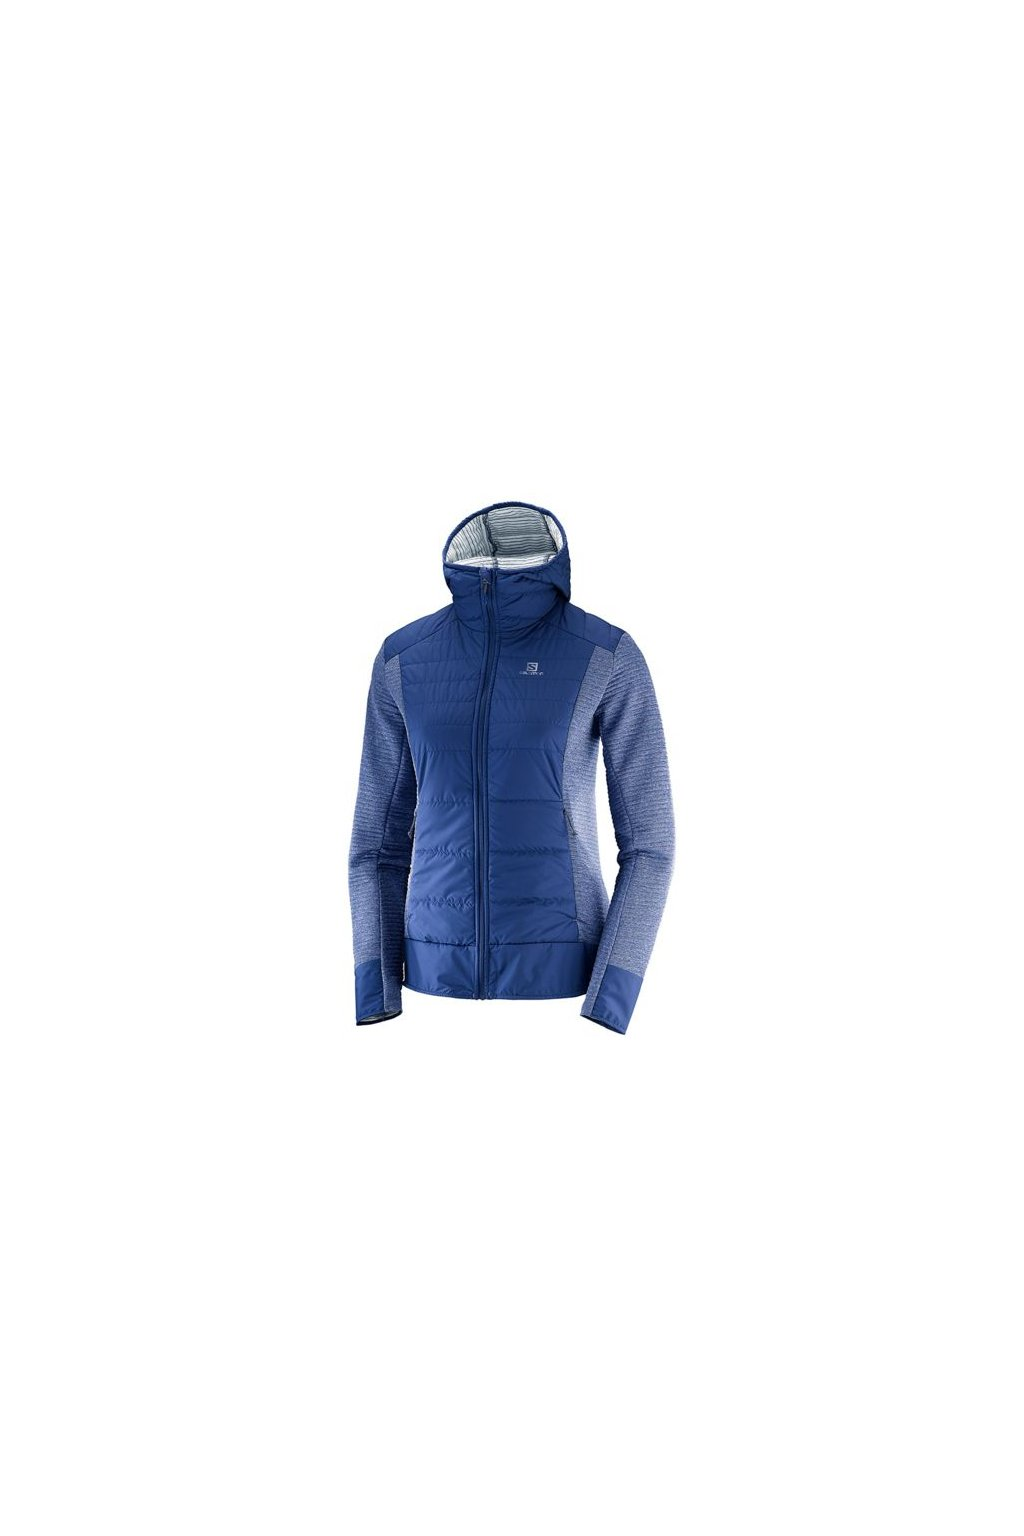 opplanet salomon right nice hybrid hoodie womens medieval blue extra large l40369700 xl main